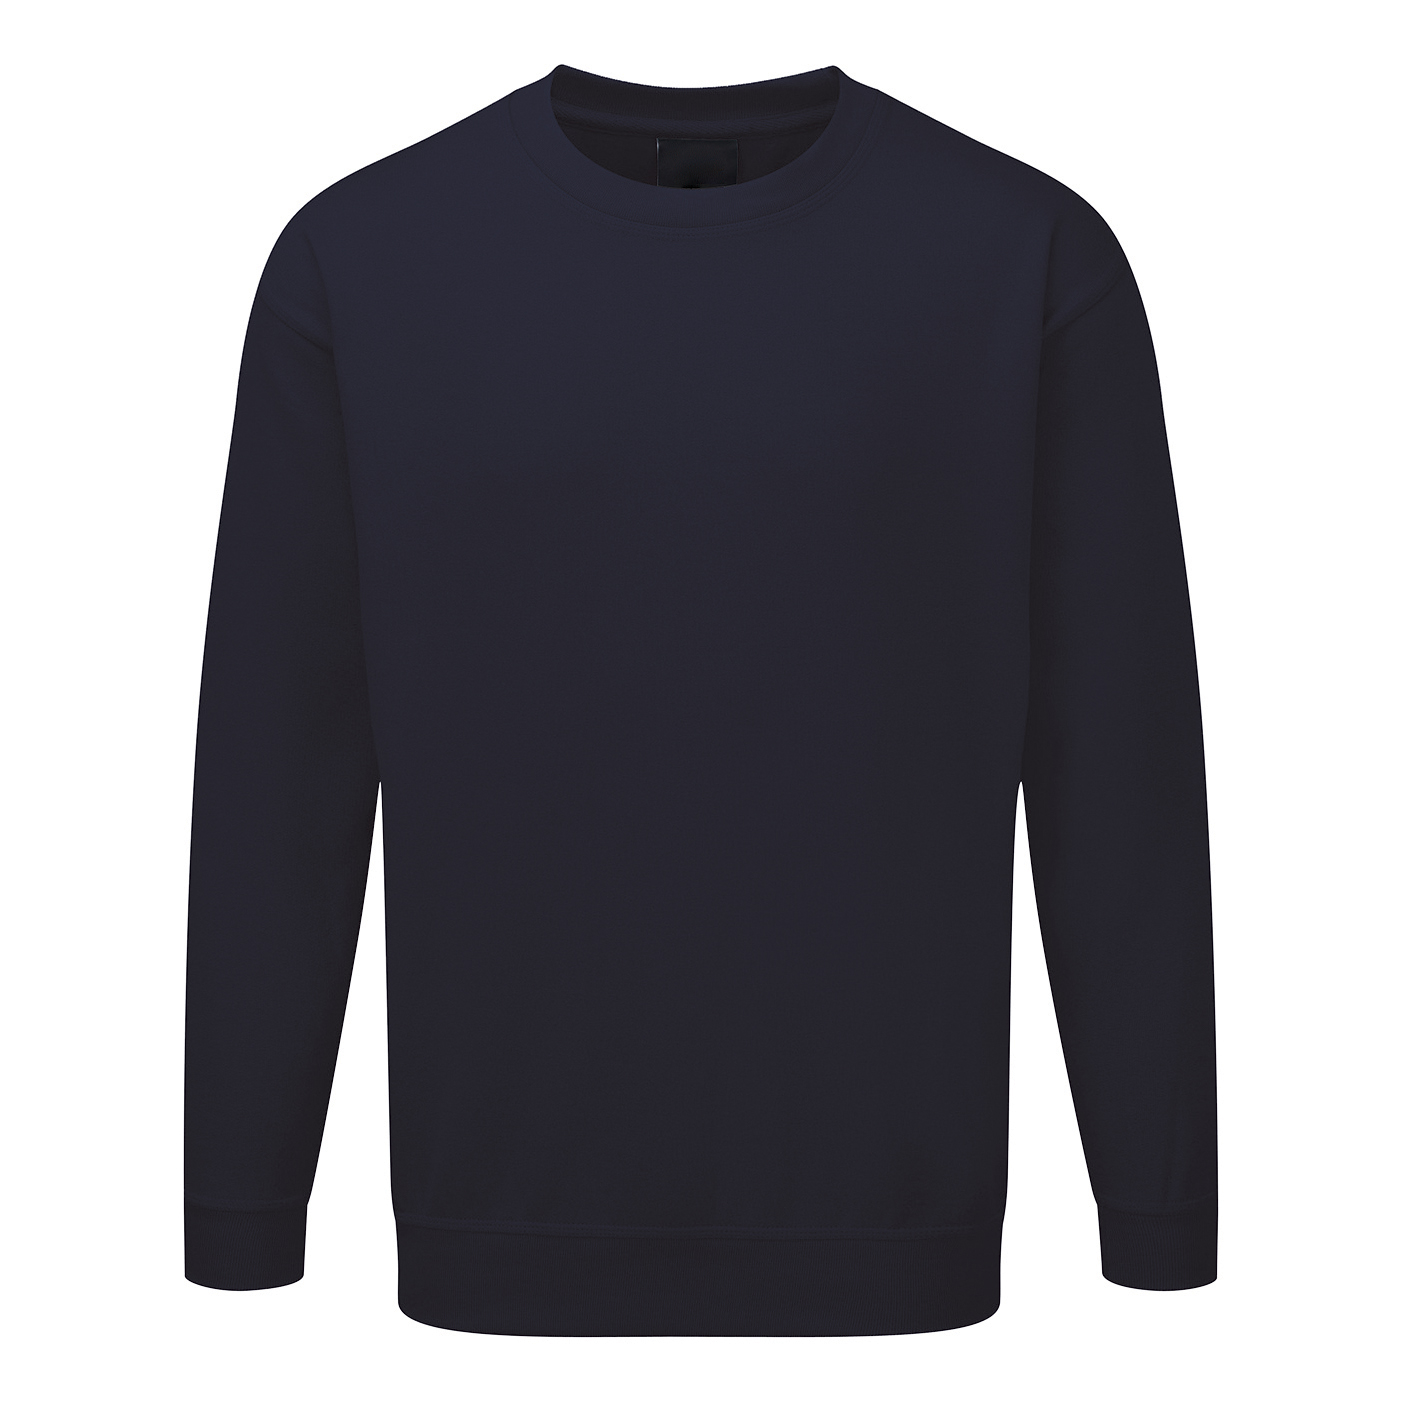 Click Workwear Sweatshirt Polycotton 300gsm Large Navy Blue Ref CLPCSNL *1-3 Days Lead Time*